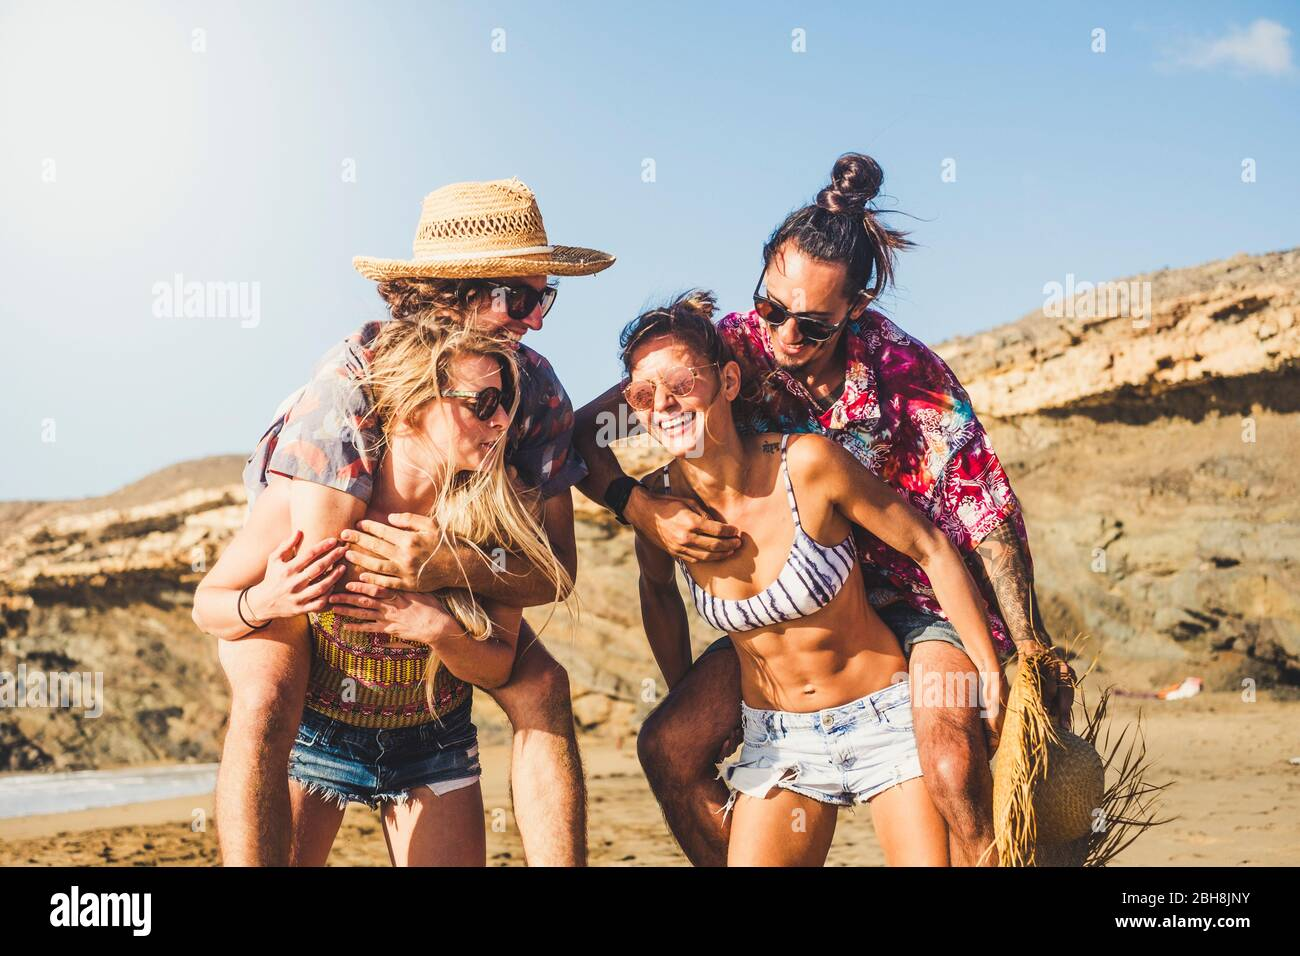 Cheerful people two couples laugh and have fun together - friends enjoying the summer holiday vacation at the berach - girls carrying boys - beautiful young men and women play in happy friendship Stock Photo